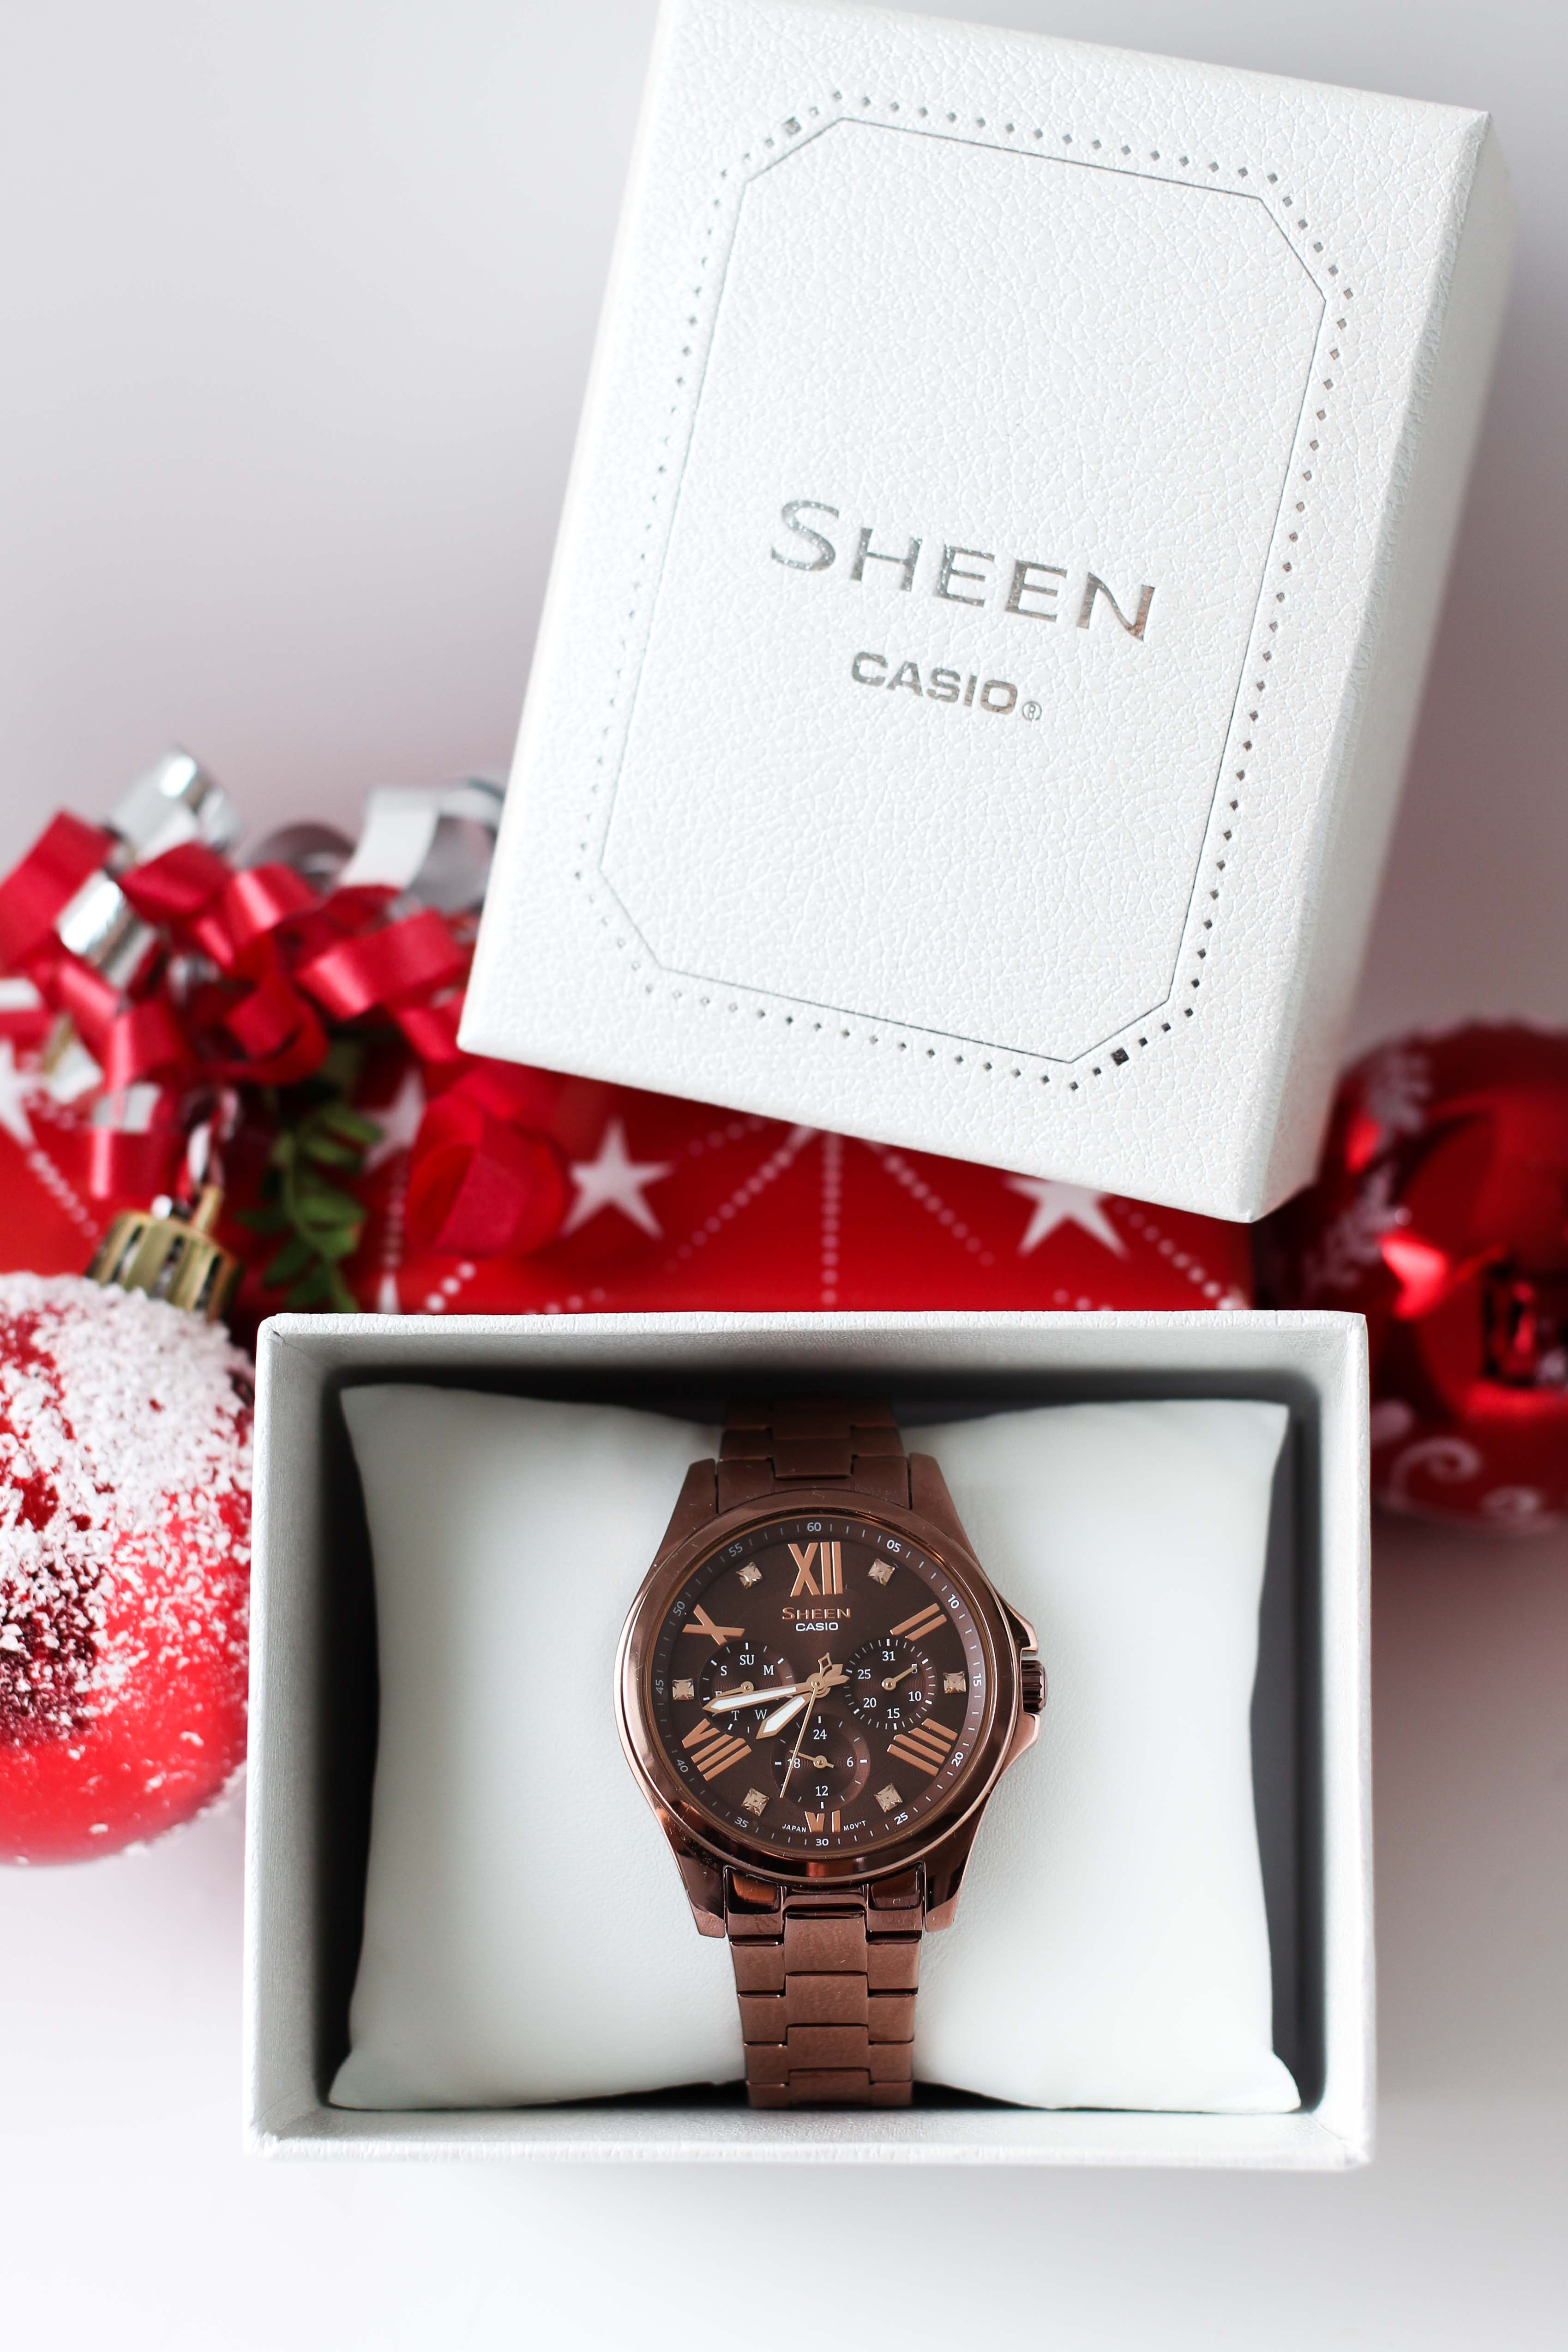 Adventskalender Blog Fashion Blog Deutschland Gewinne Sheen by Casio Damenuhr in Roségold Braun Gewinnspiel Geschenkidee Weihnachten